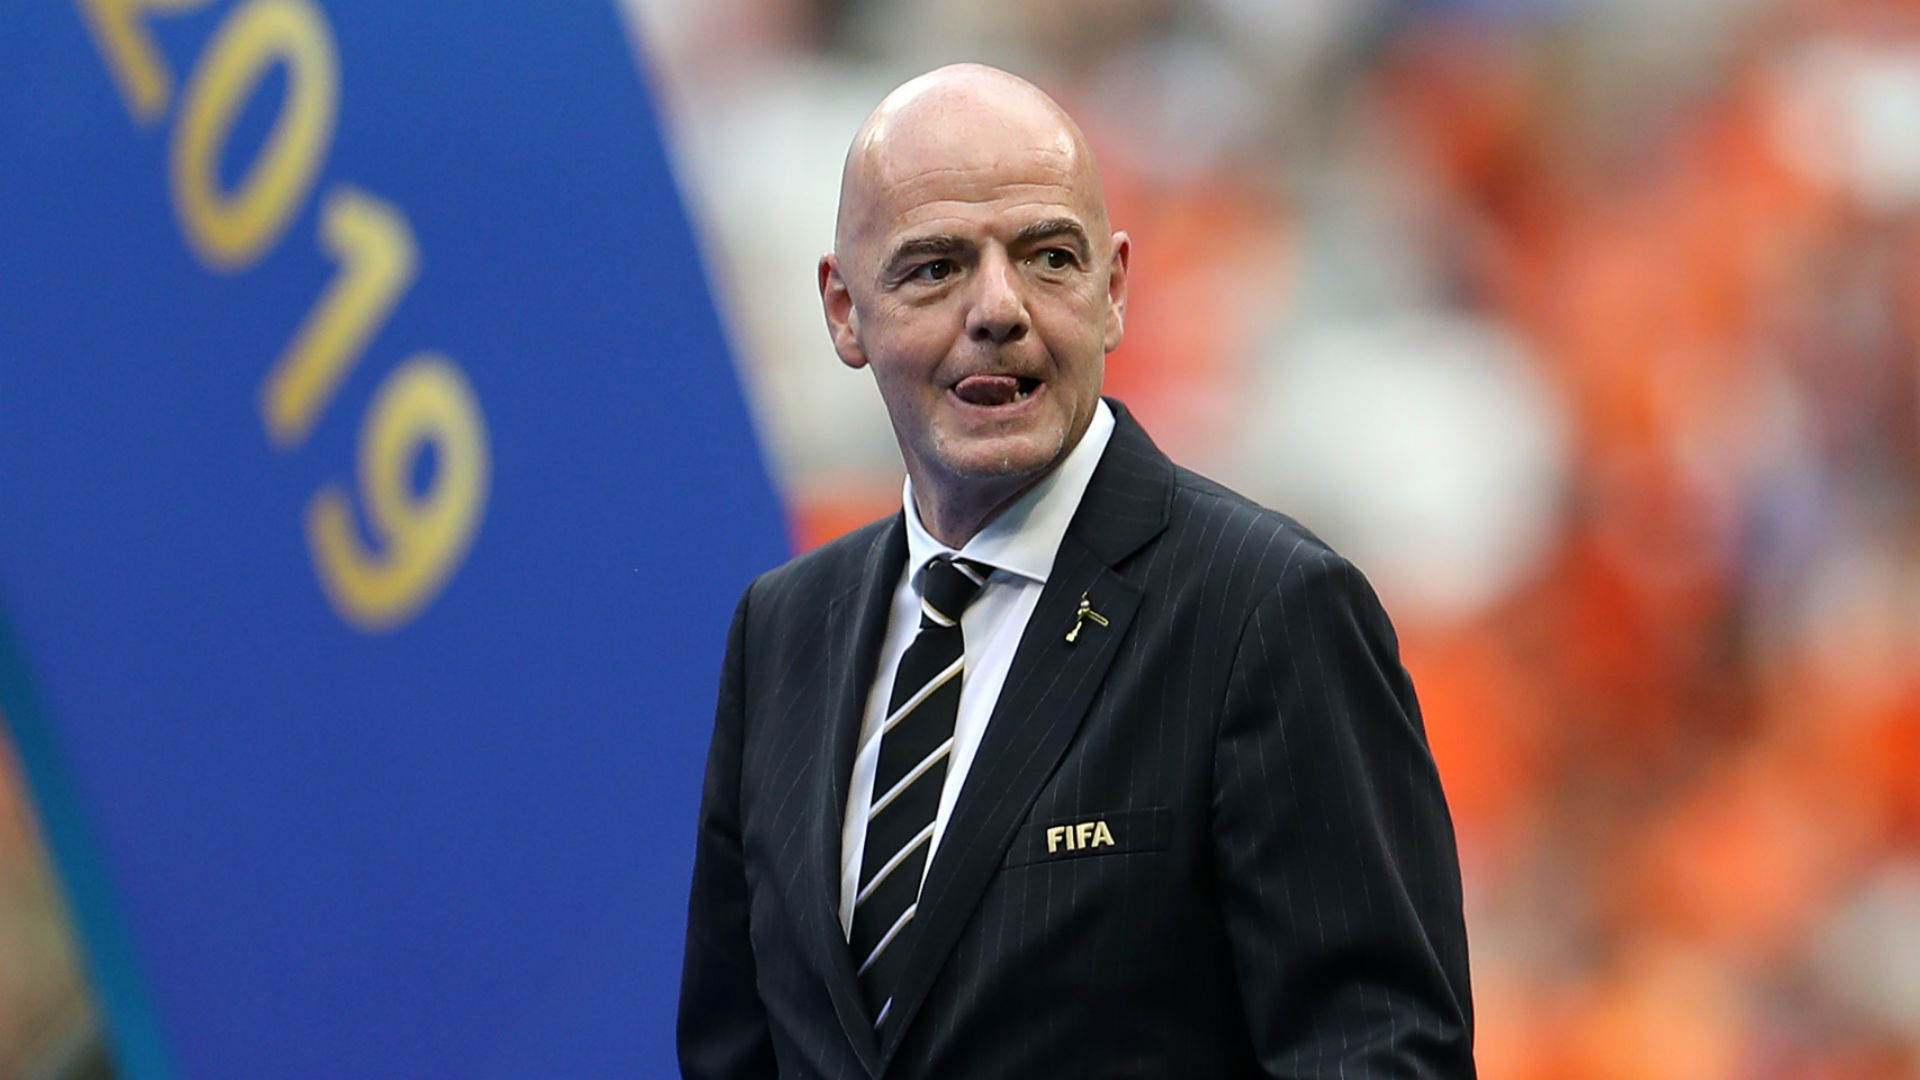 Coronavirus: FIFA to assess impact of pandemic on transfer windows, player contracts